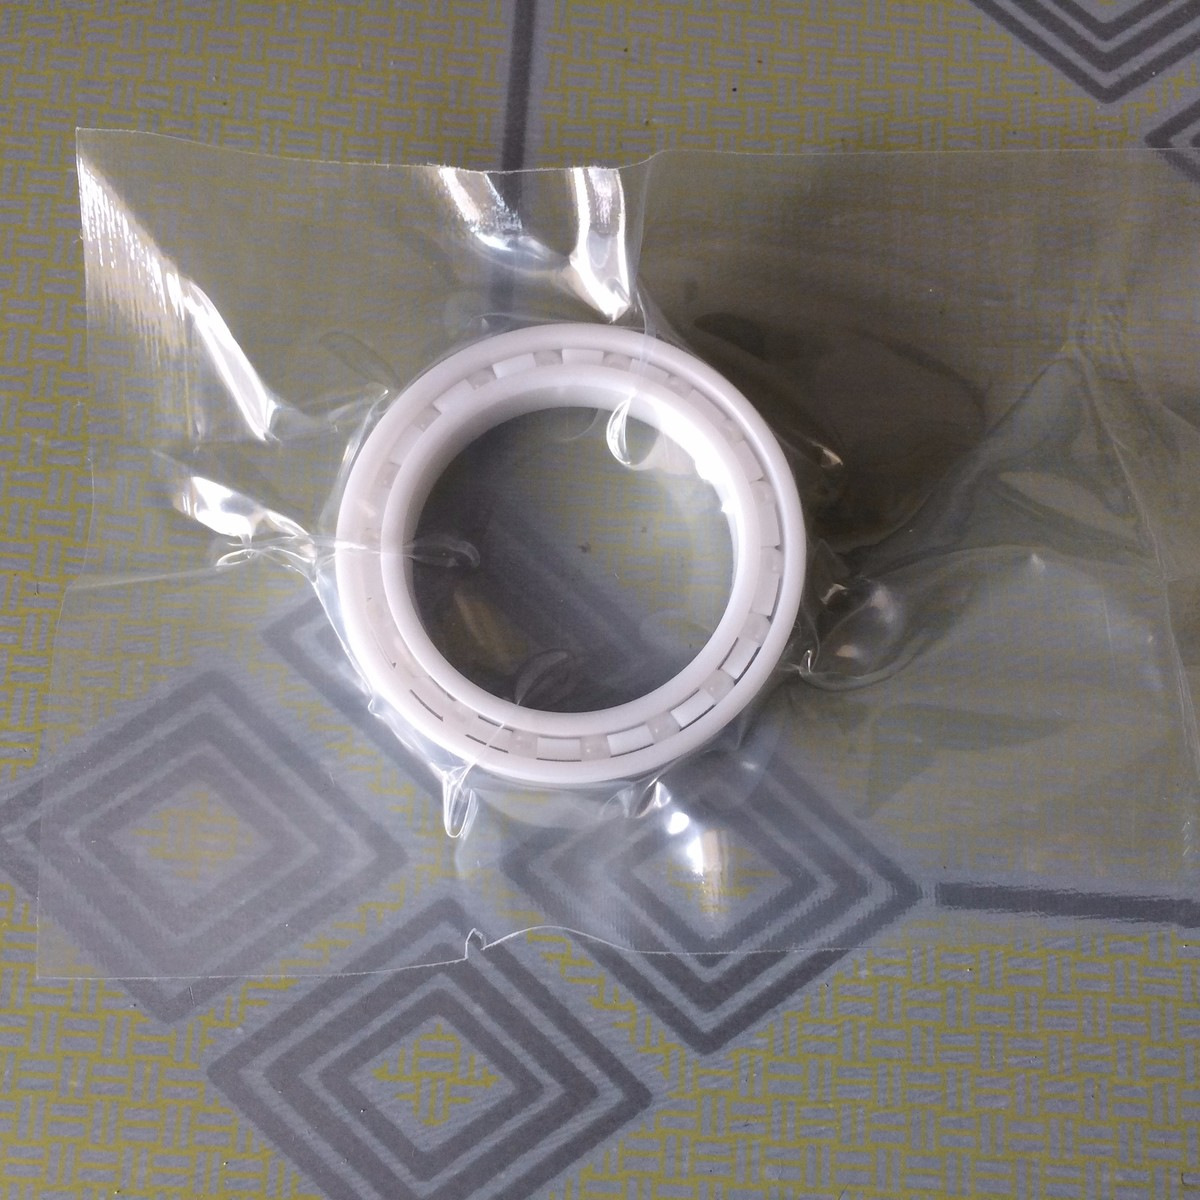 6900 6901 6902 6903 6904 6905 6906 6907 full ZrO2 ceramic ball bearing full Zirconia ZrO2 bearing rosenberg 6904